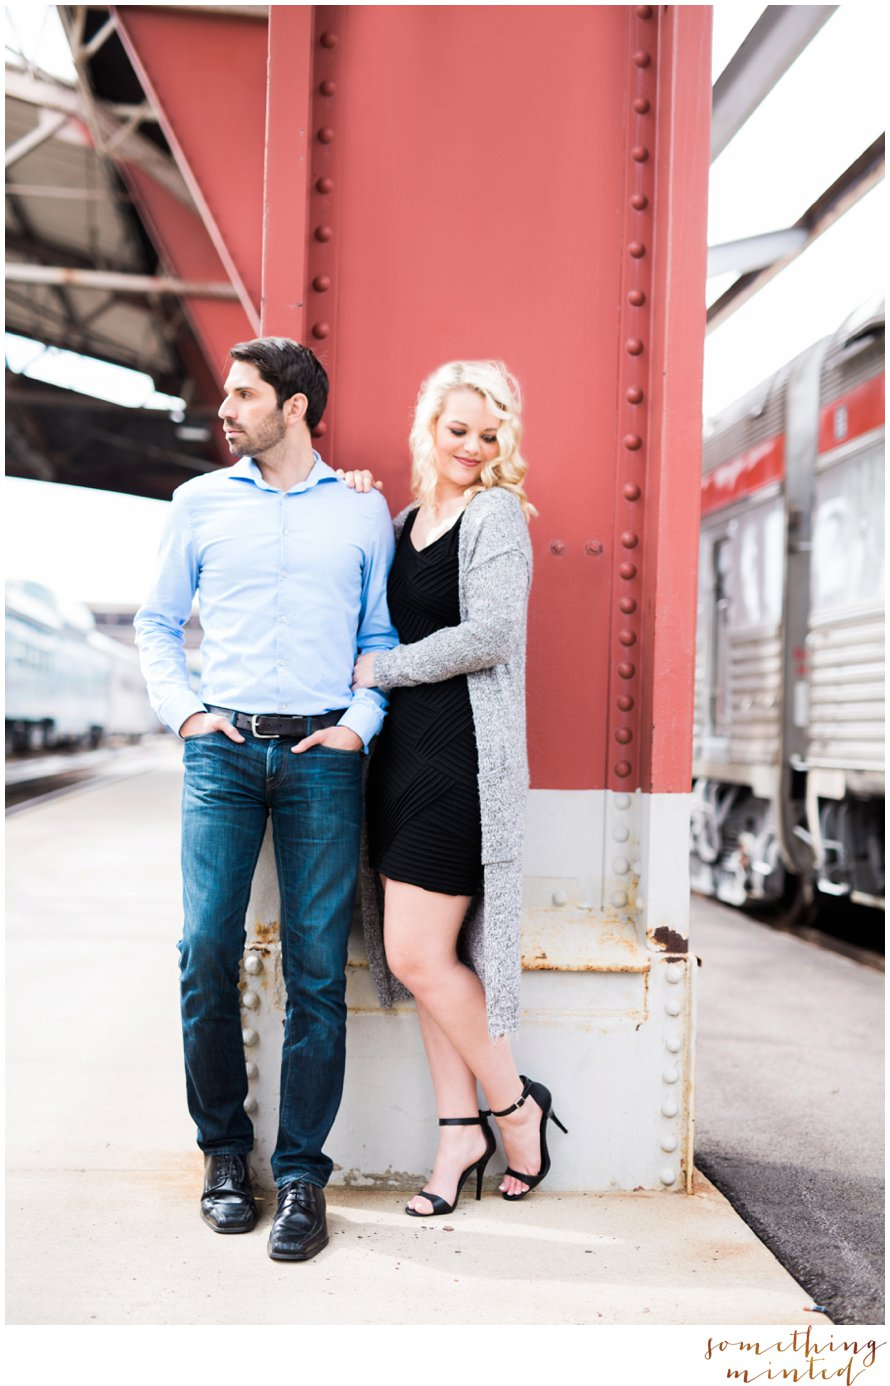 Union Station Engagement Photography, Something MInted